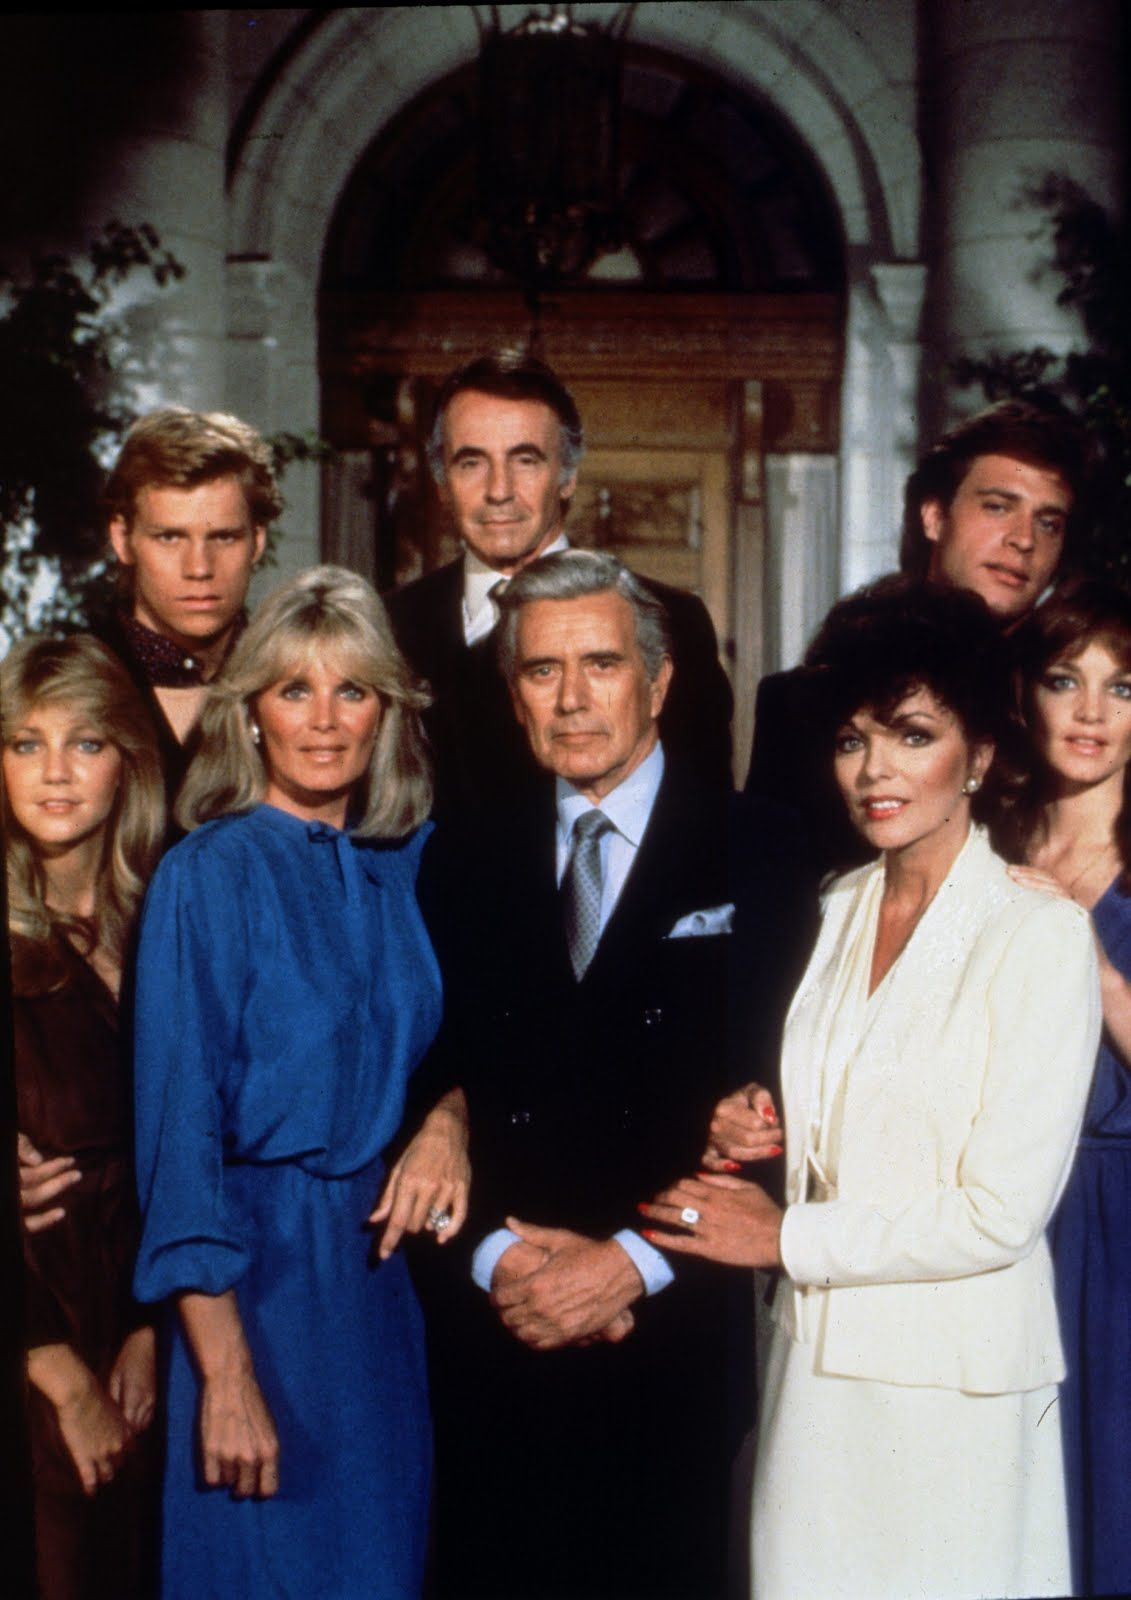 Dynasty 1981 1989 Cast And History Http Www Imdb Com Title